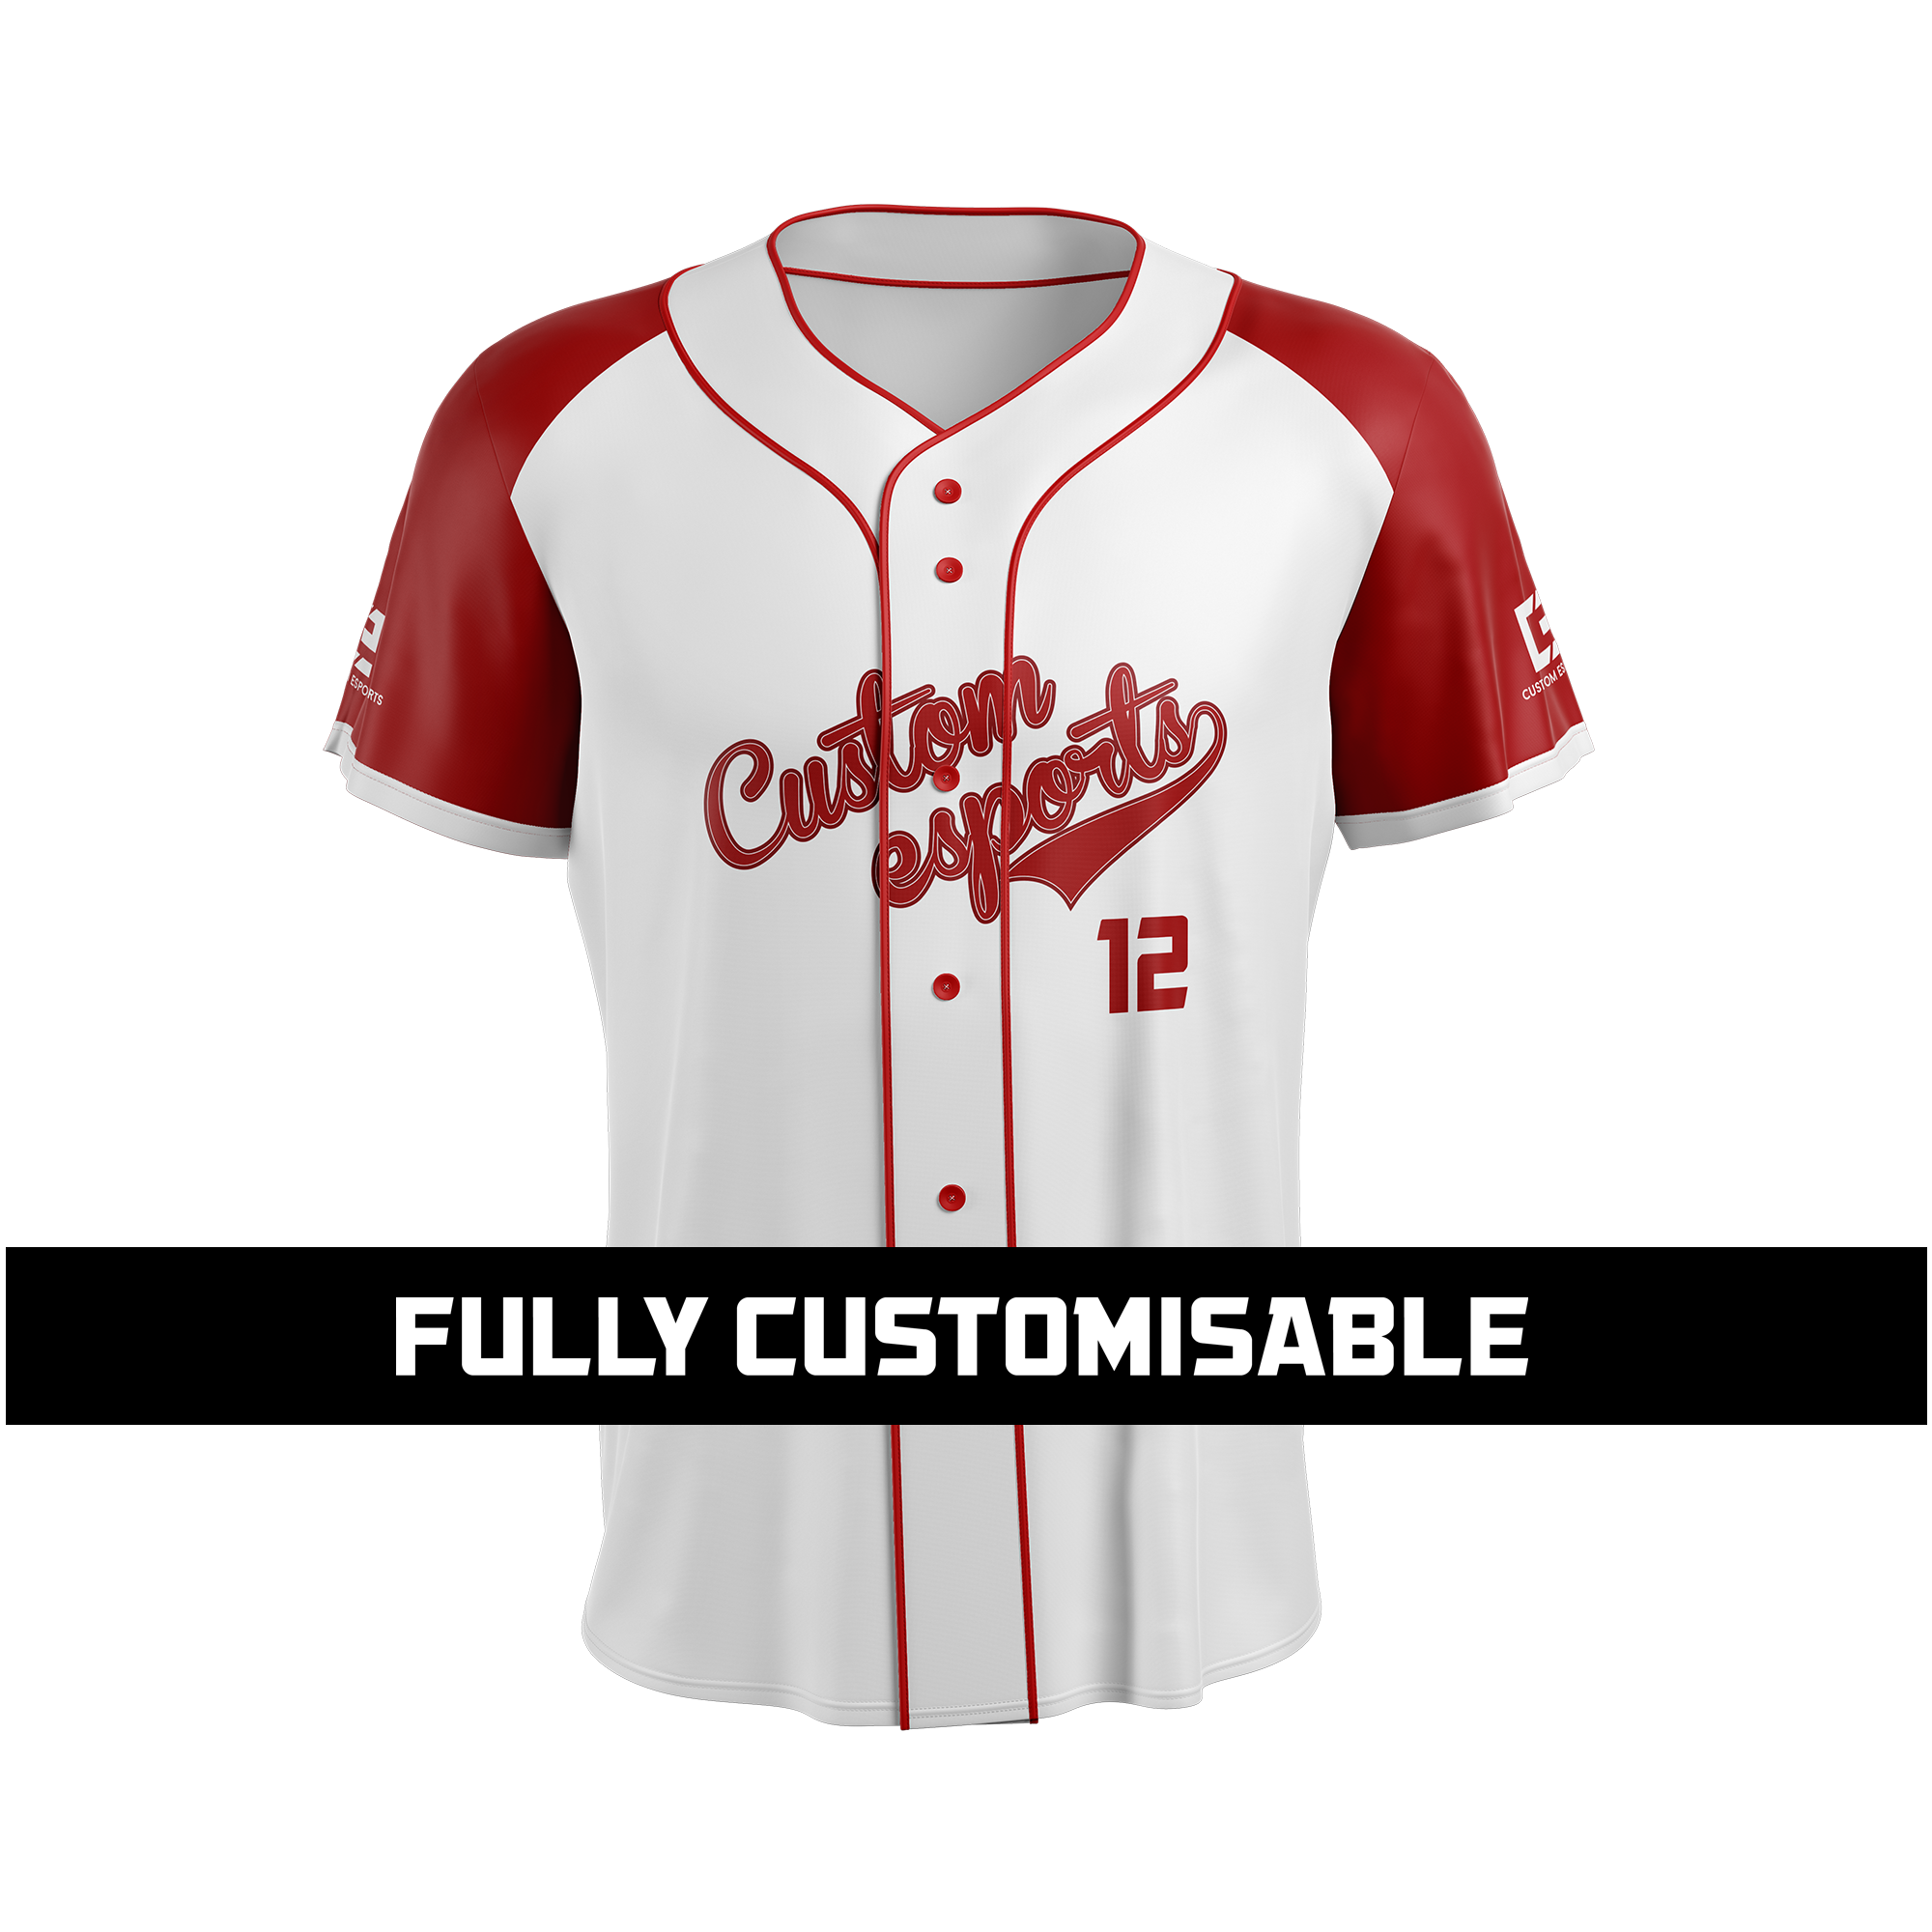 ec20658a318 Custom Short Sleeve Baseball Jersey - Custom Esports